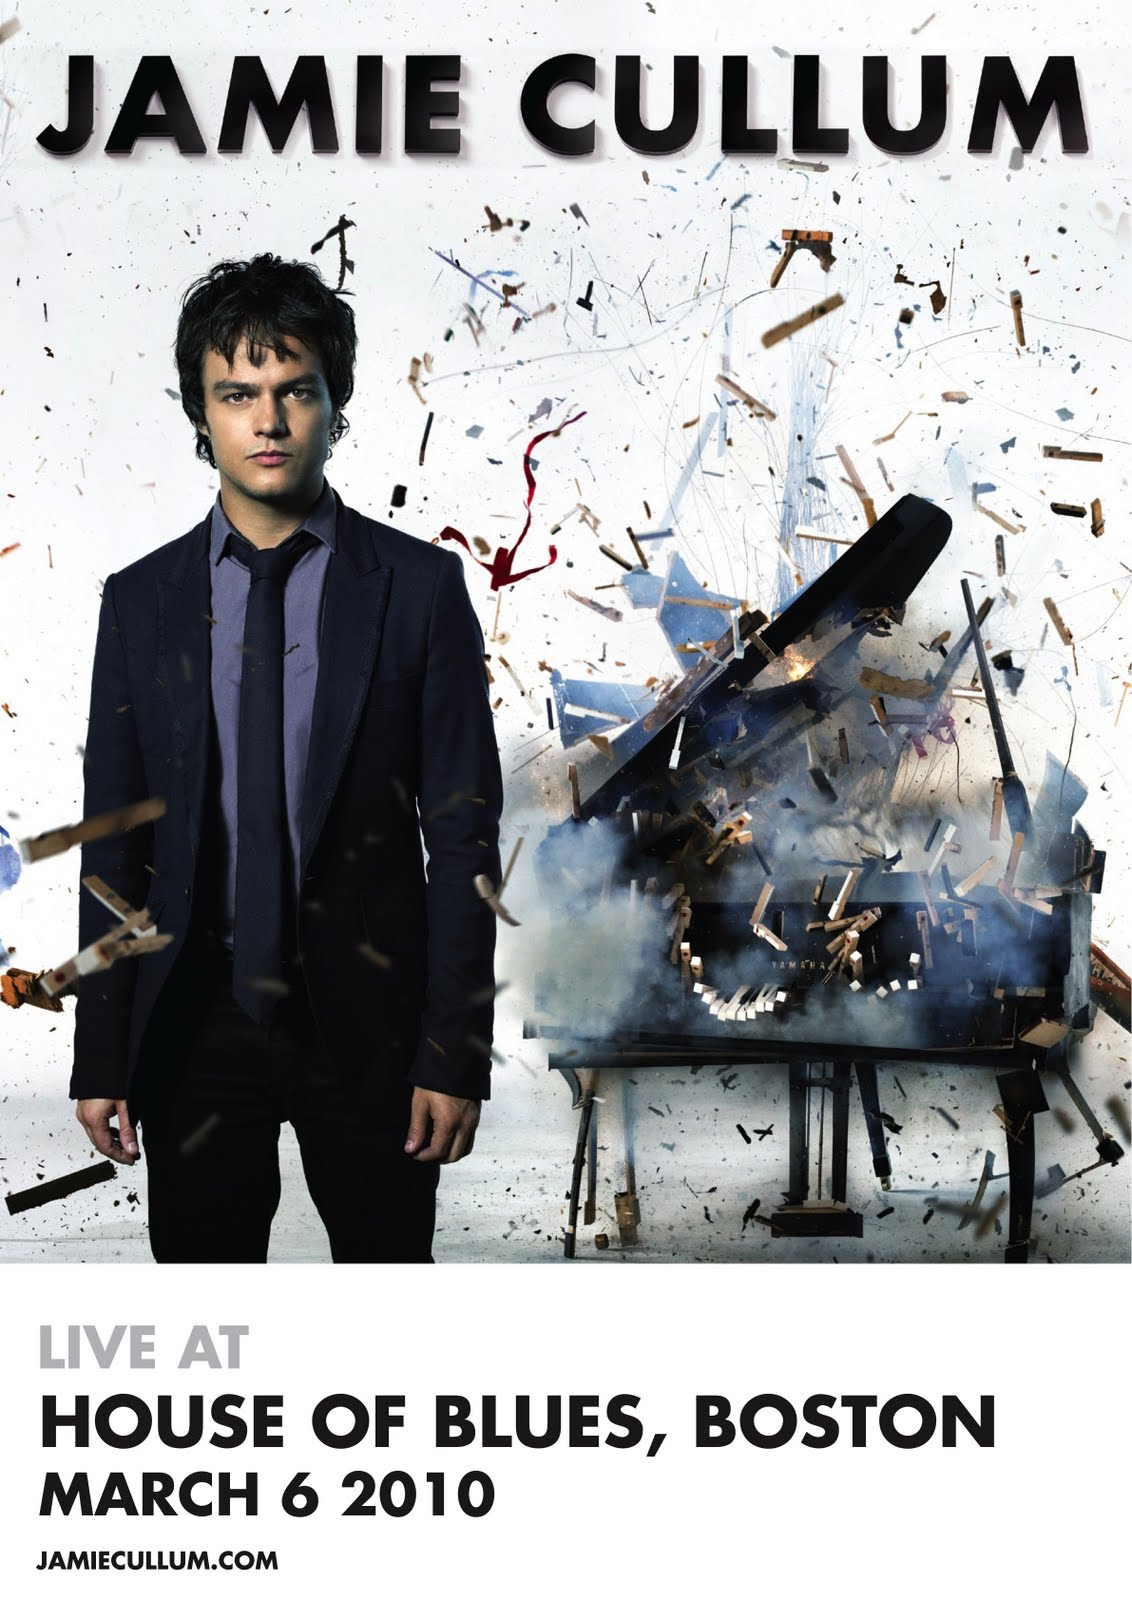 know about Jamie Cullum is